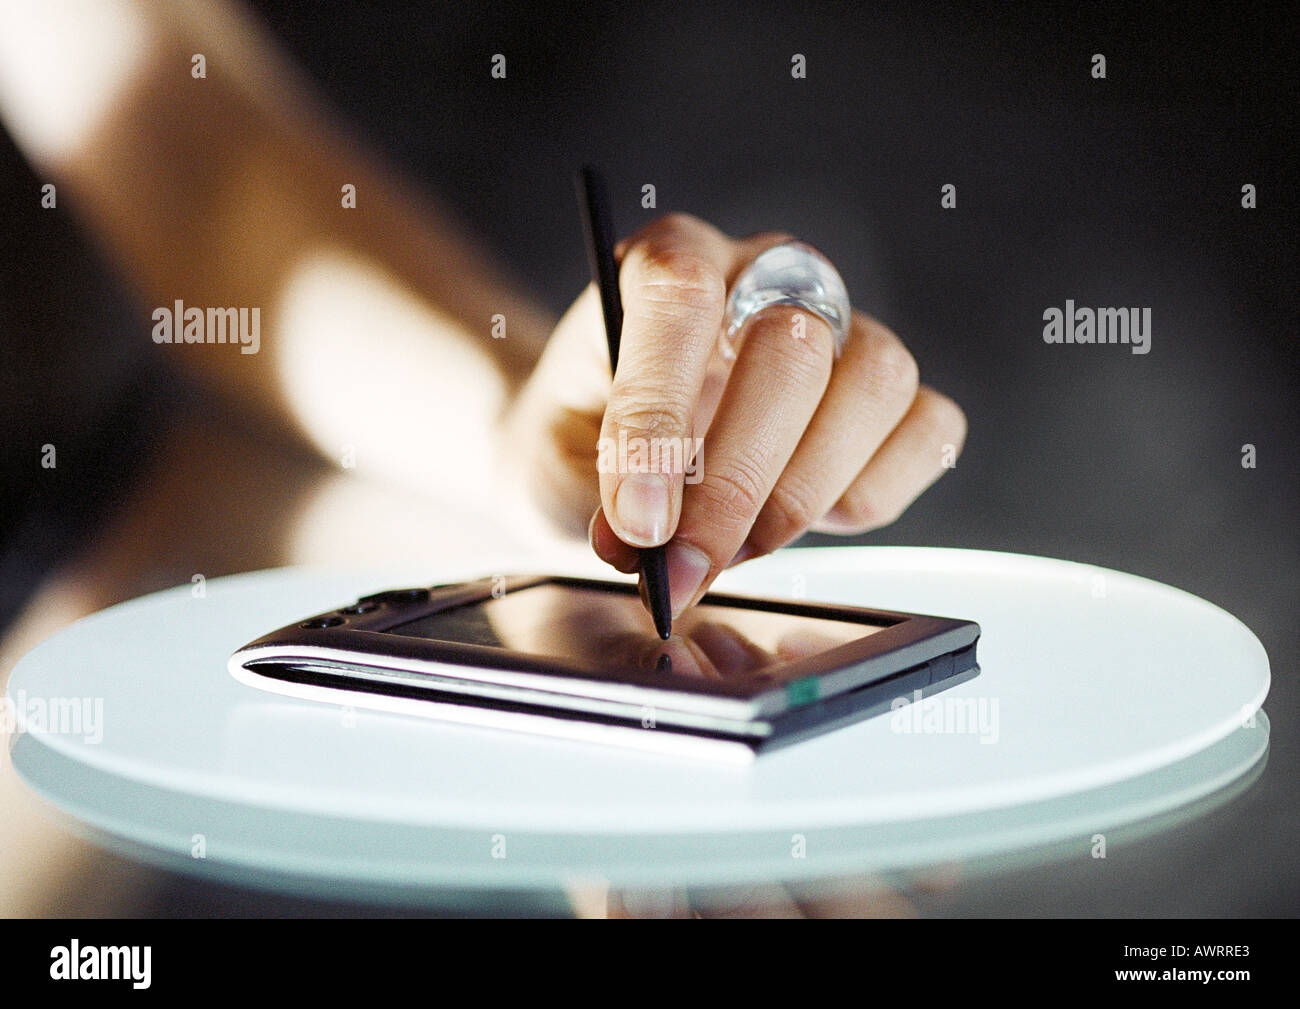 Hand using pocket computer, close-up - Stock Image